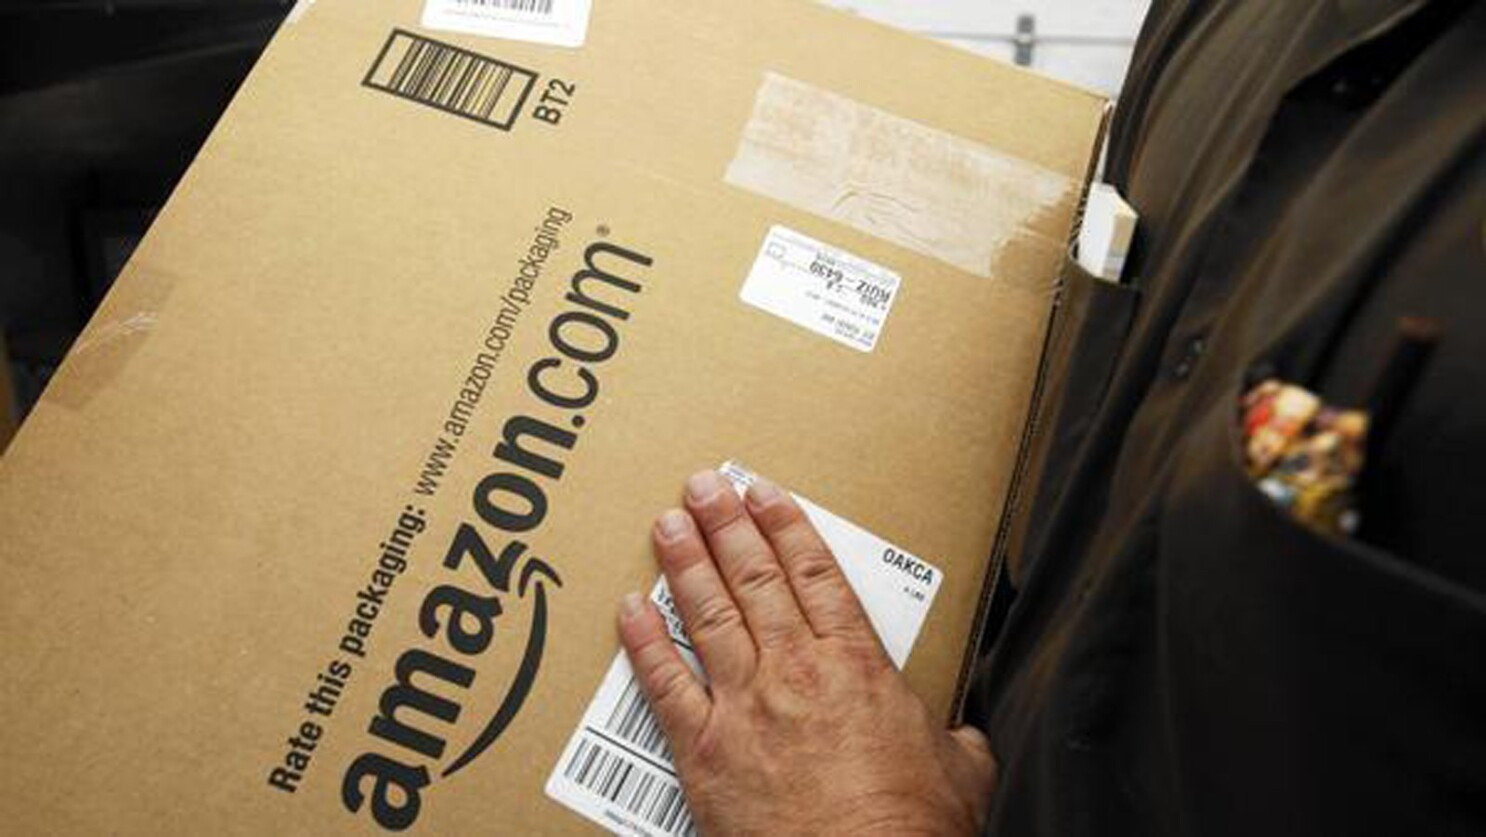 Amazon ends use of tips to meet drivers' wage guarantees